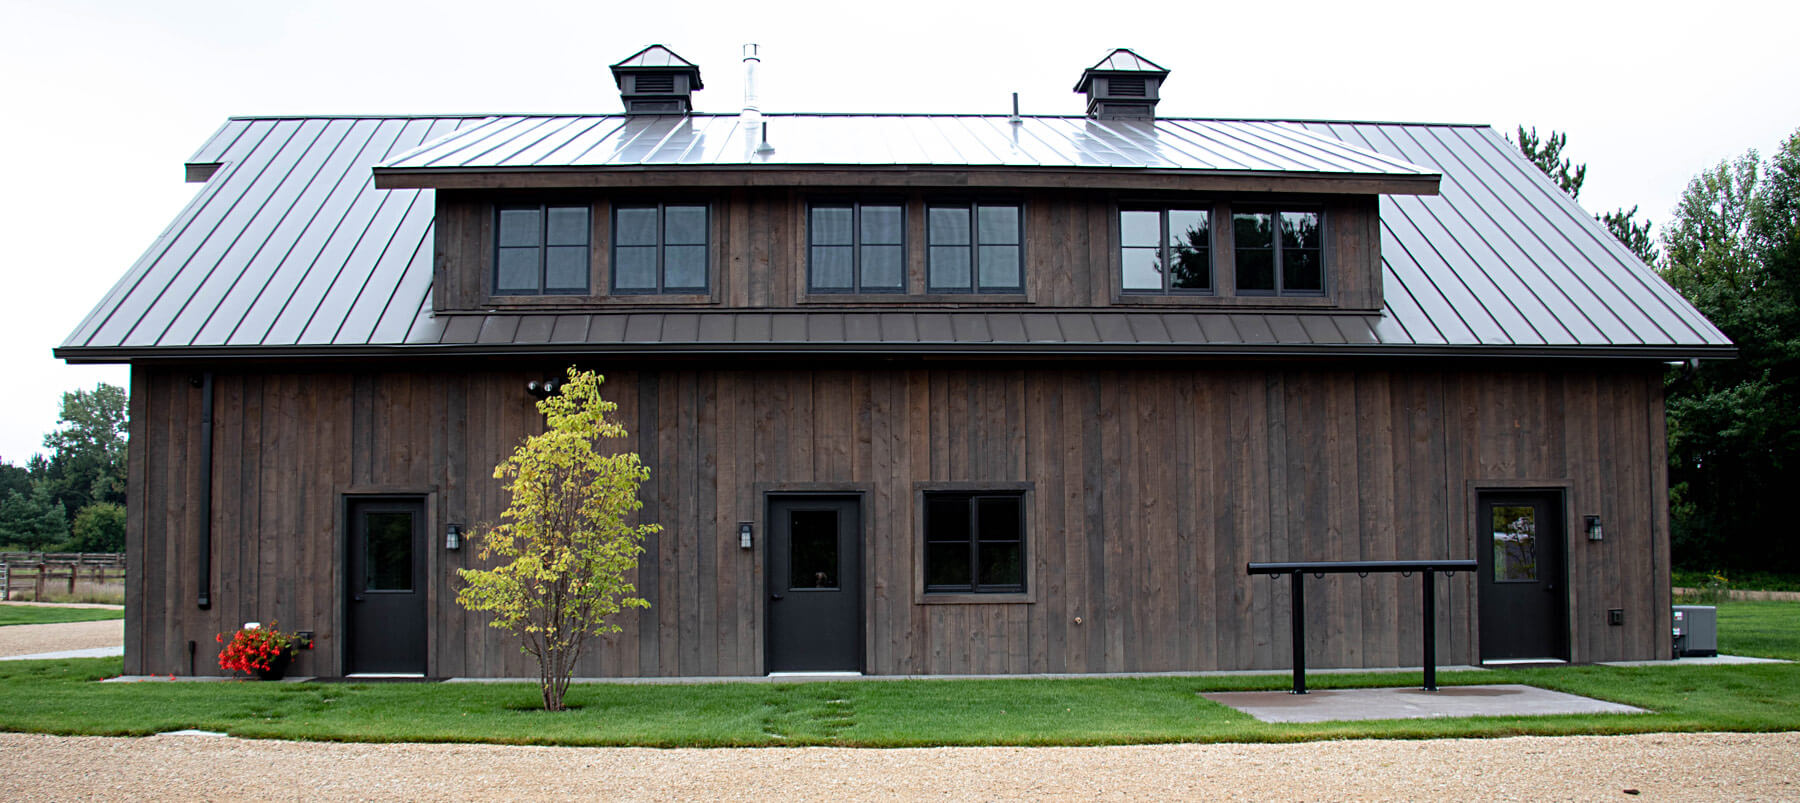 Twin Cities New Construction Barn Pros Equestrian Barn Stillwater Minnesota exterior side view built by Red Pine Builders